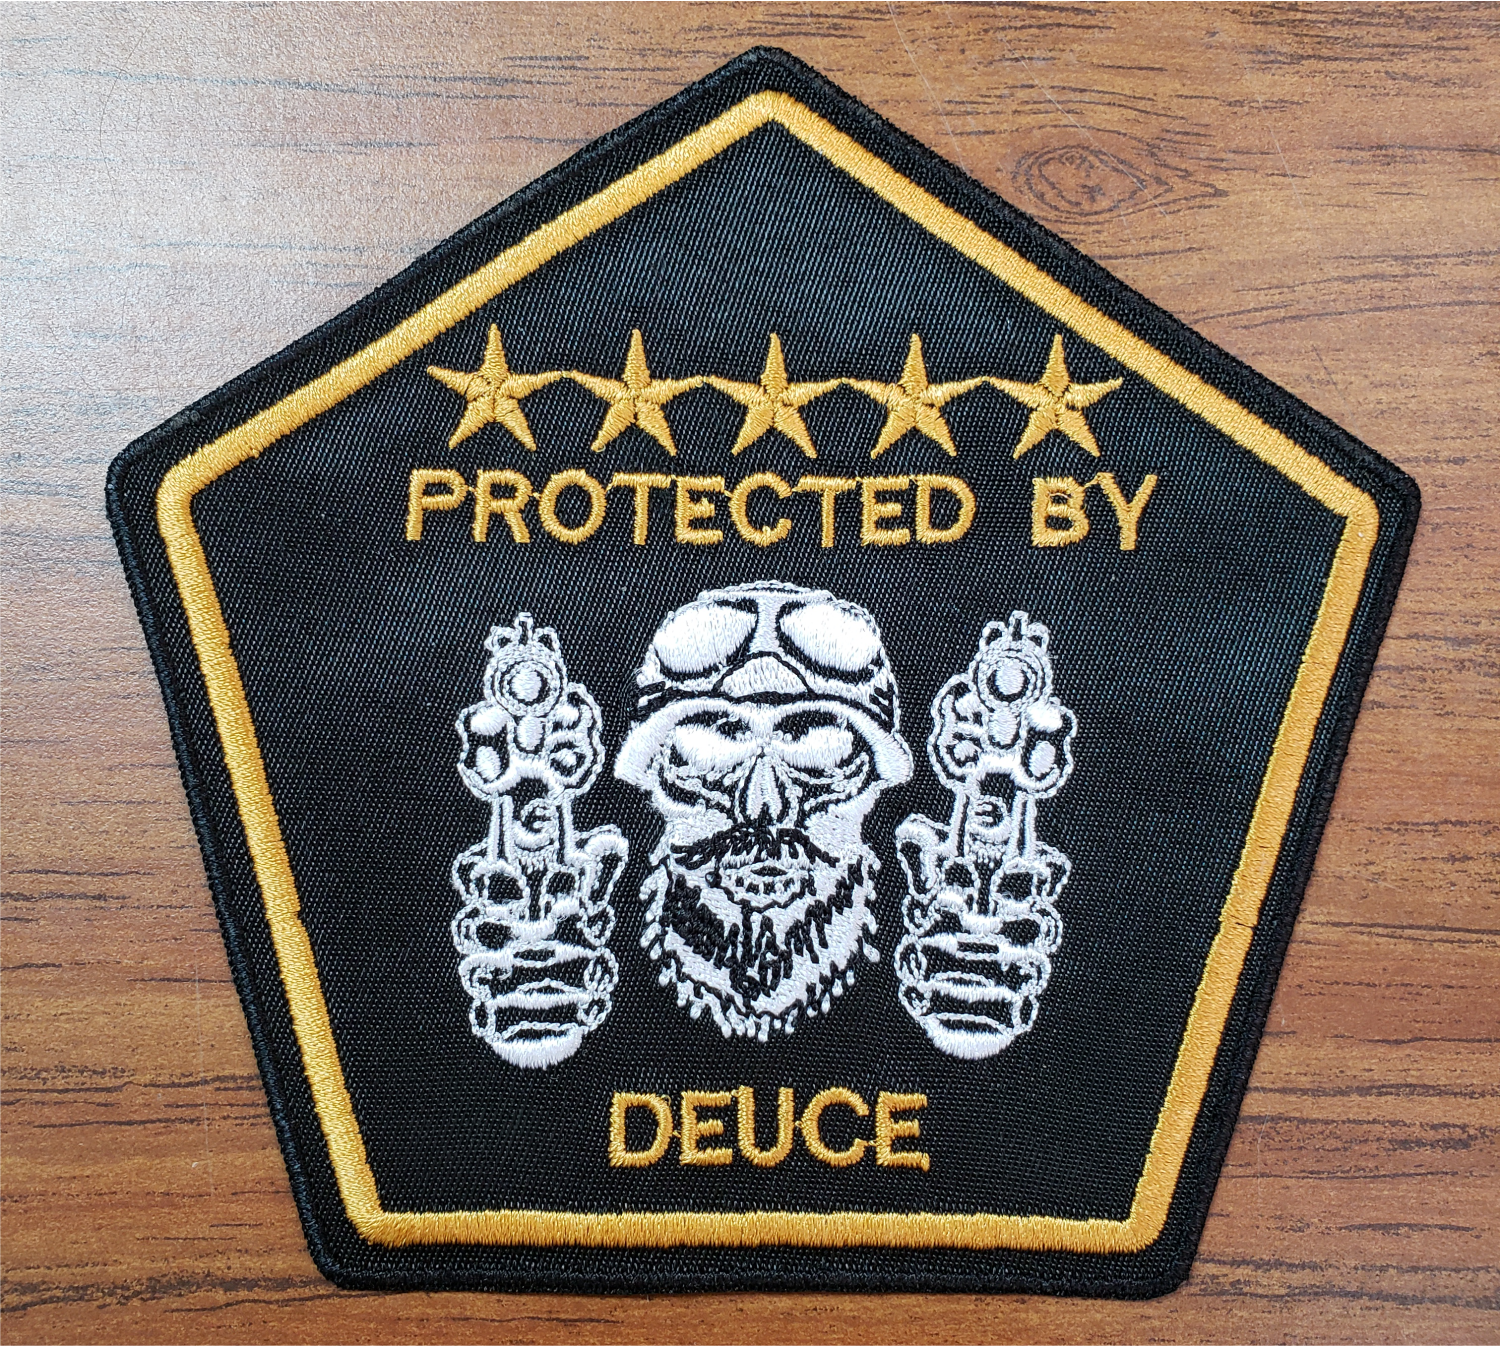 US Veterans MC Ladies' Protected by Patch